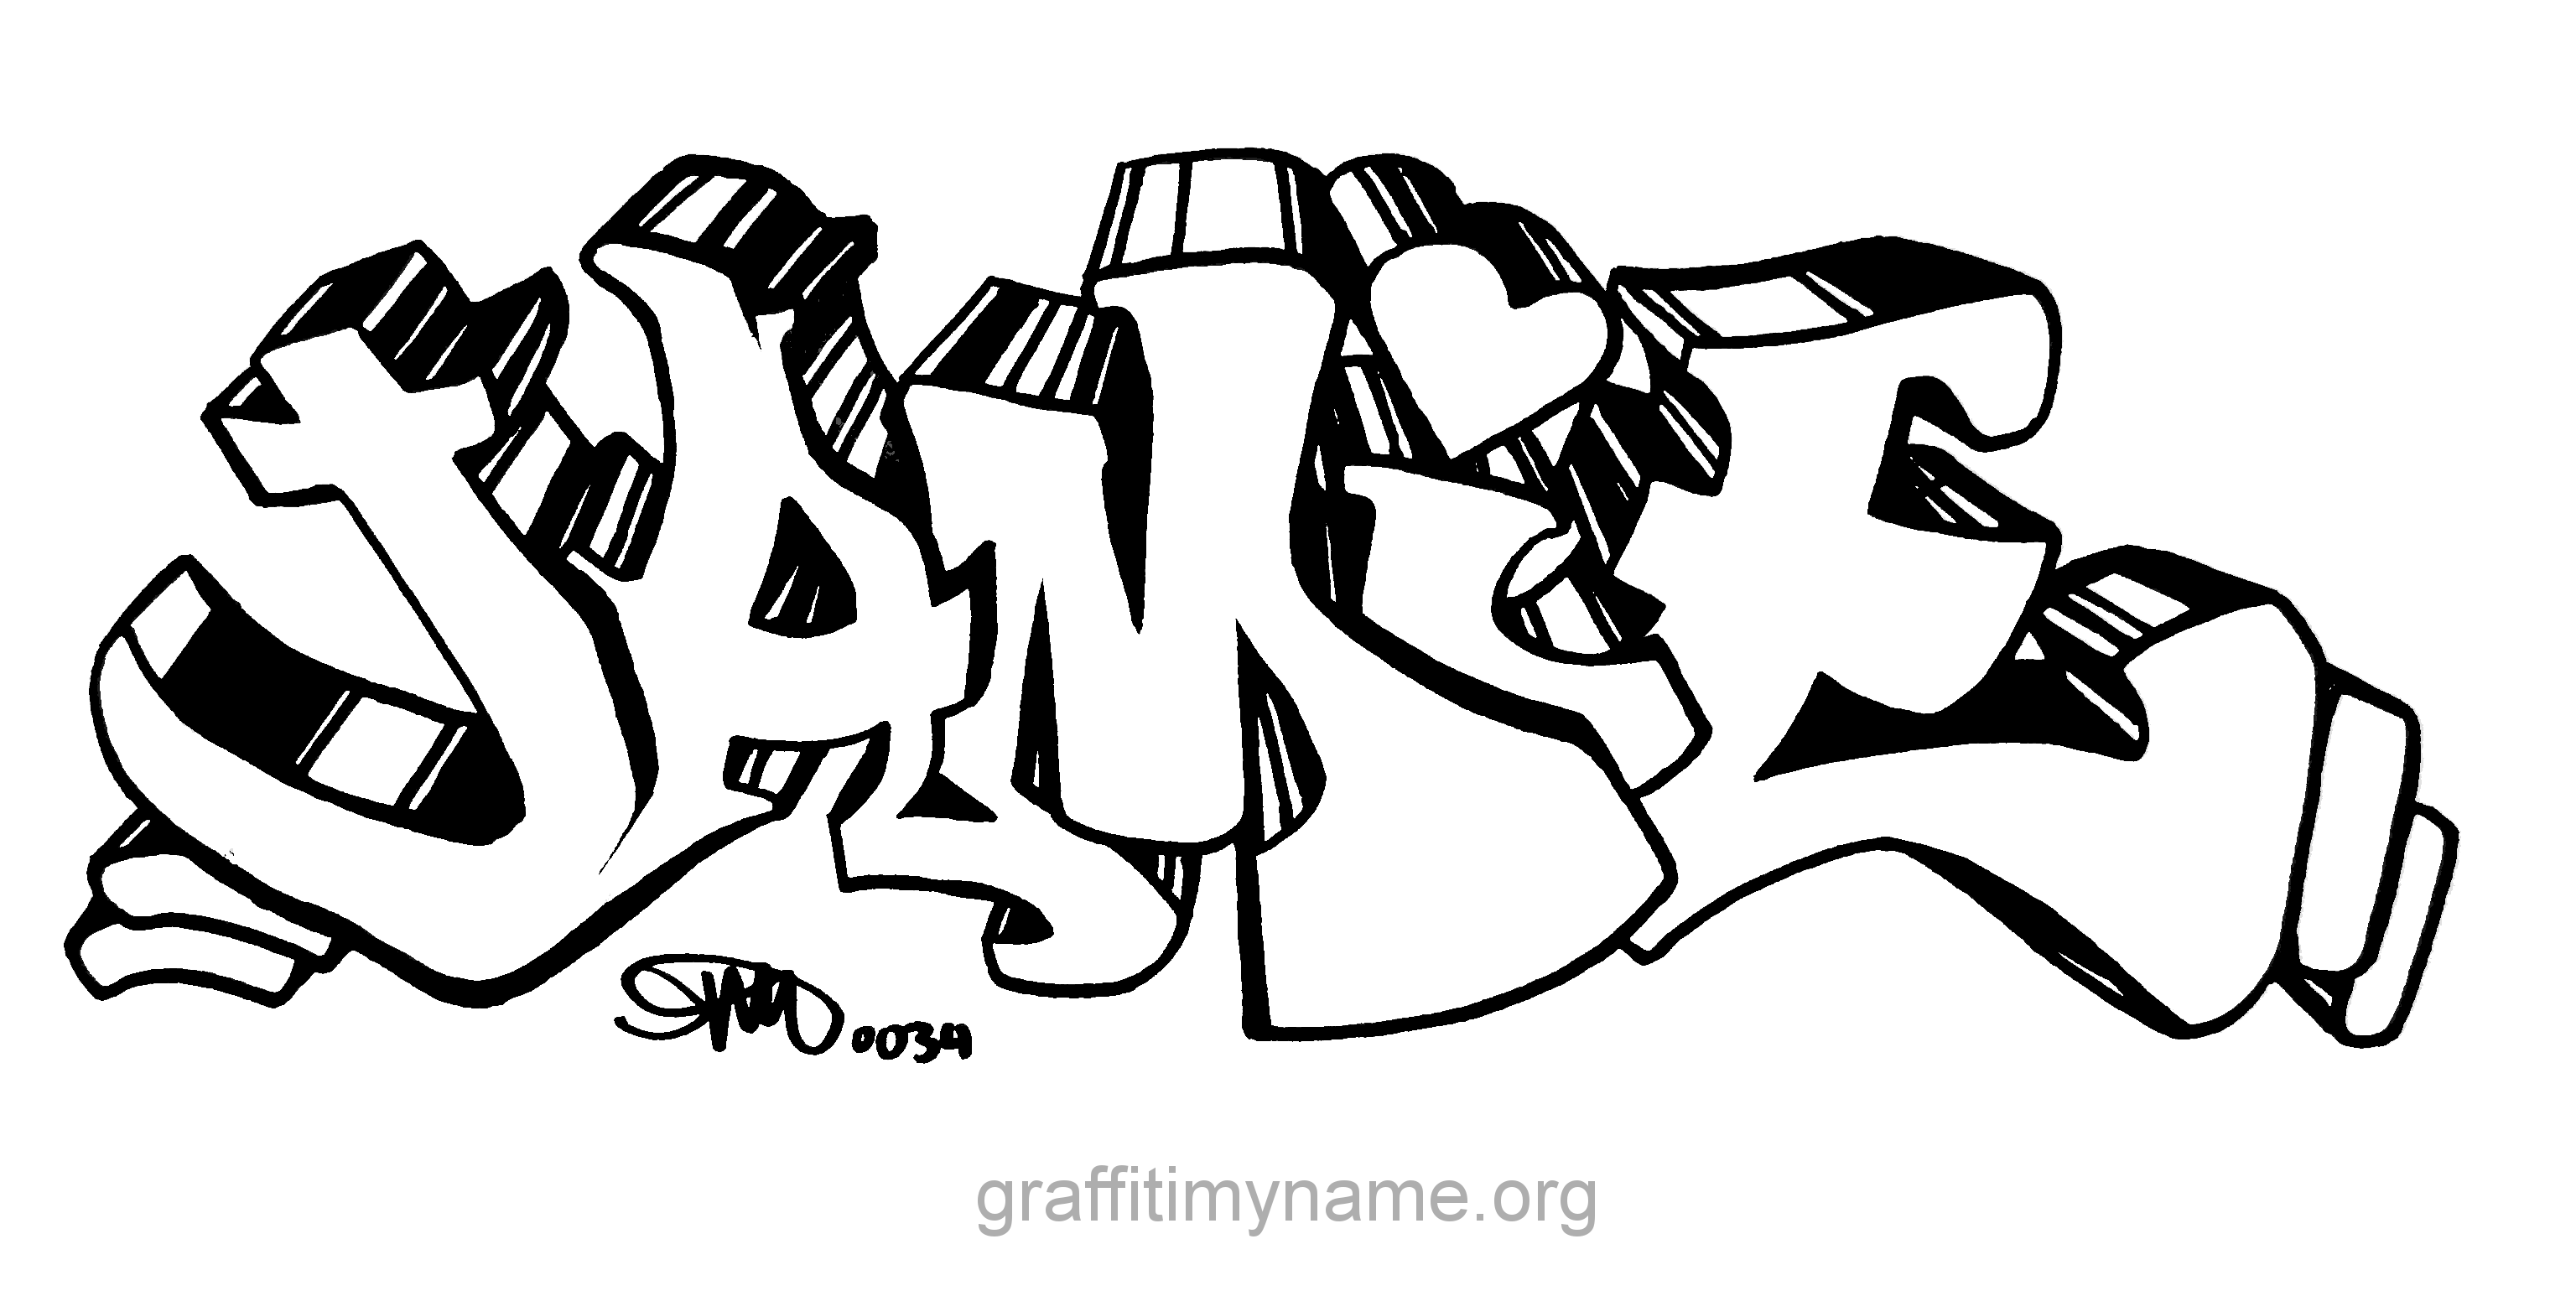 Free Coloring Pages Of Graffiti Names Graffiti Coloring Pages Names